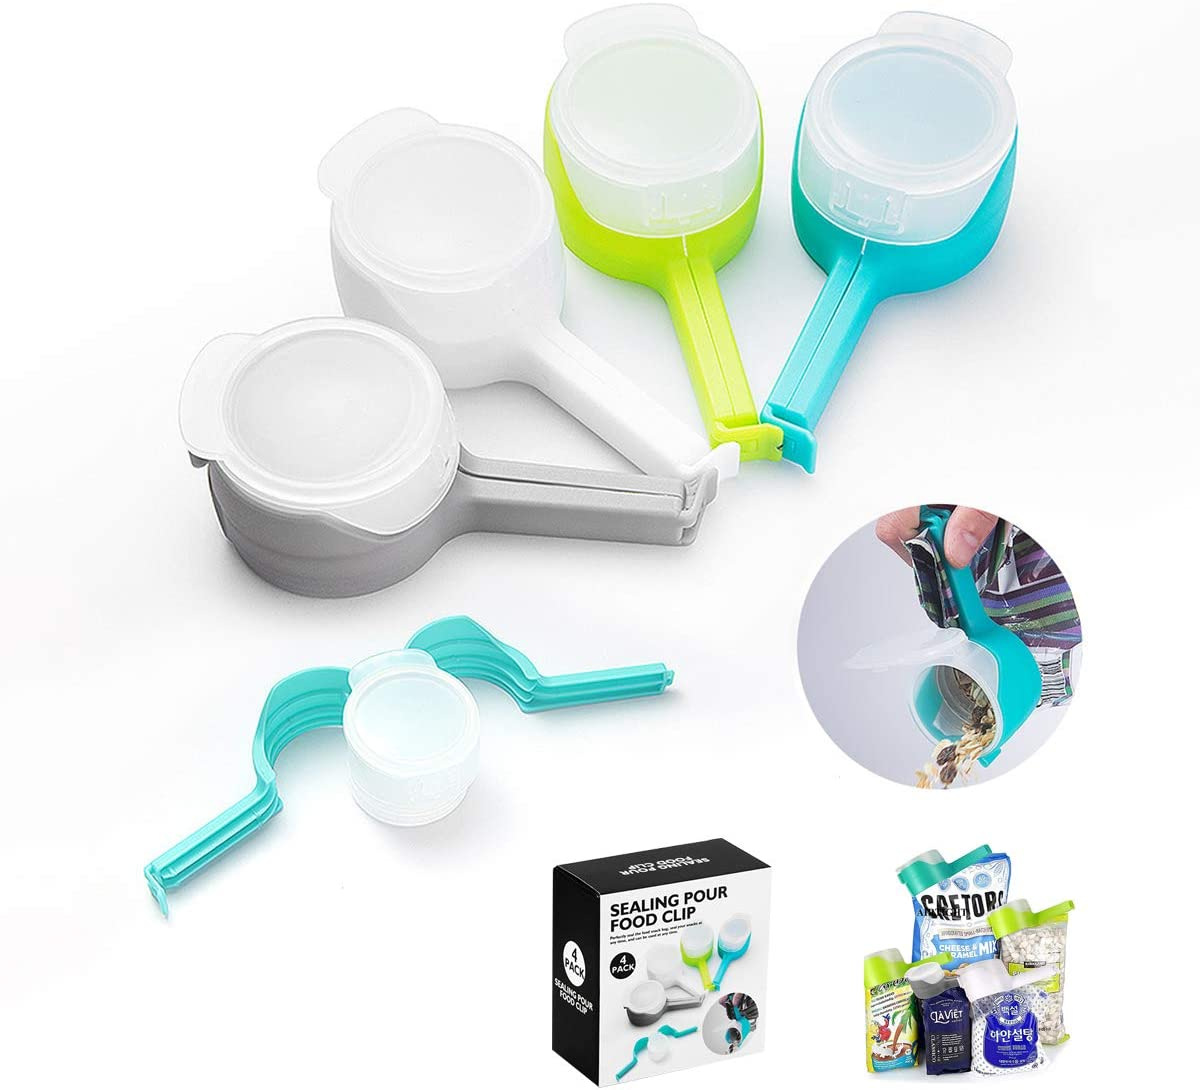 COPAAD Bag Clips for Food, Food Storage Sealing Clips with Pour Spouts, Kitchen Chip Bag Clips, Plastic Cap Sealer Clips, Pet Food Bag Clips, Great for Kitchen Food Storage and Organization, 4pcs